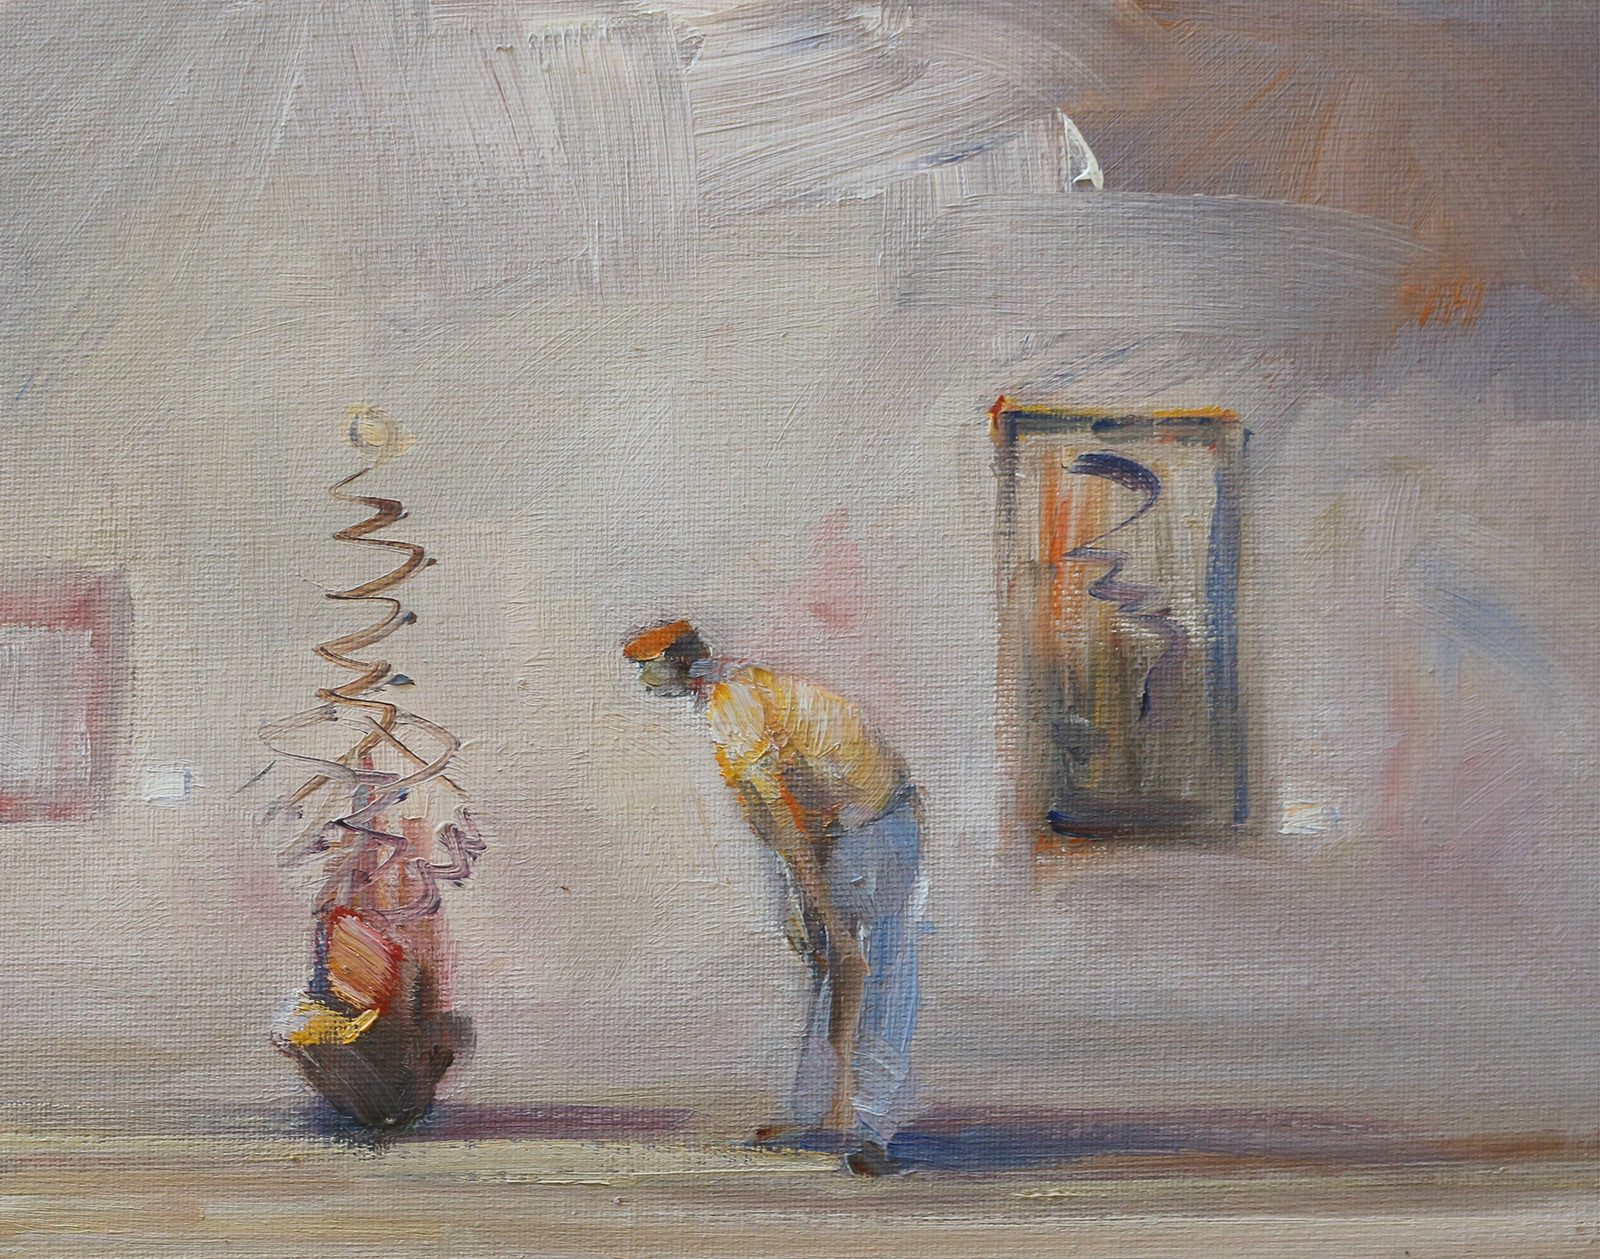 Oil on canvas study of art lover and modern sculpture in a gallery scene by artist Stewart Taylor